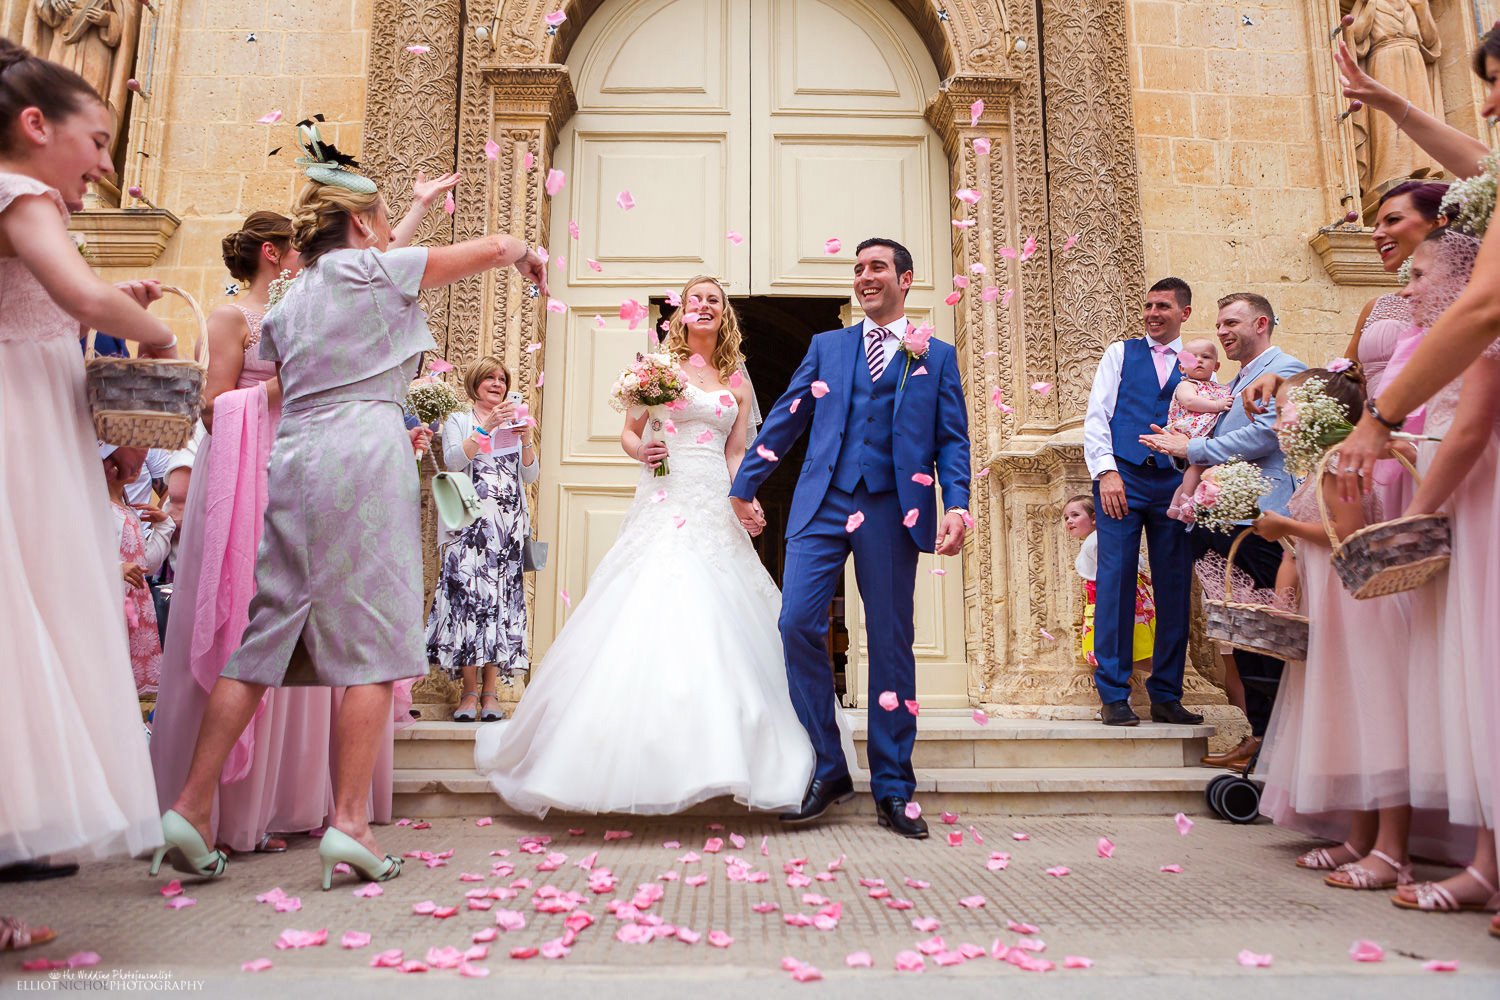 Bride & Groom showered in pink confetti outside St Mary's parish church in Attard, Maltaee